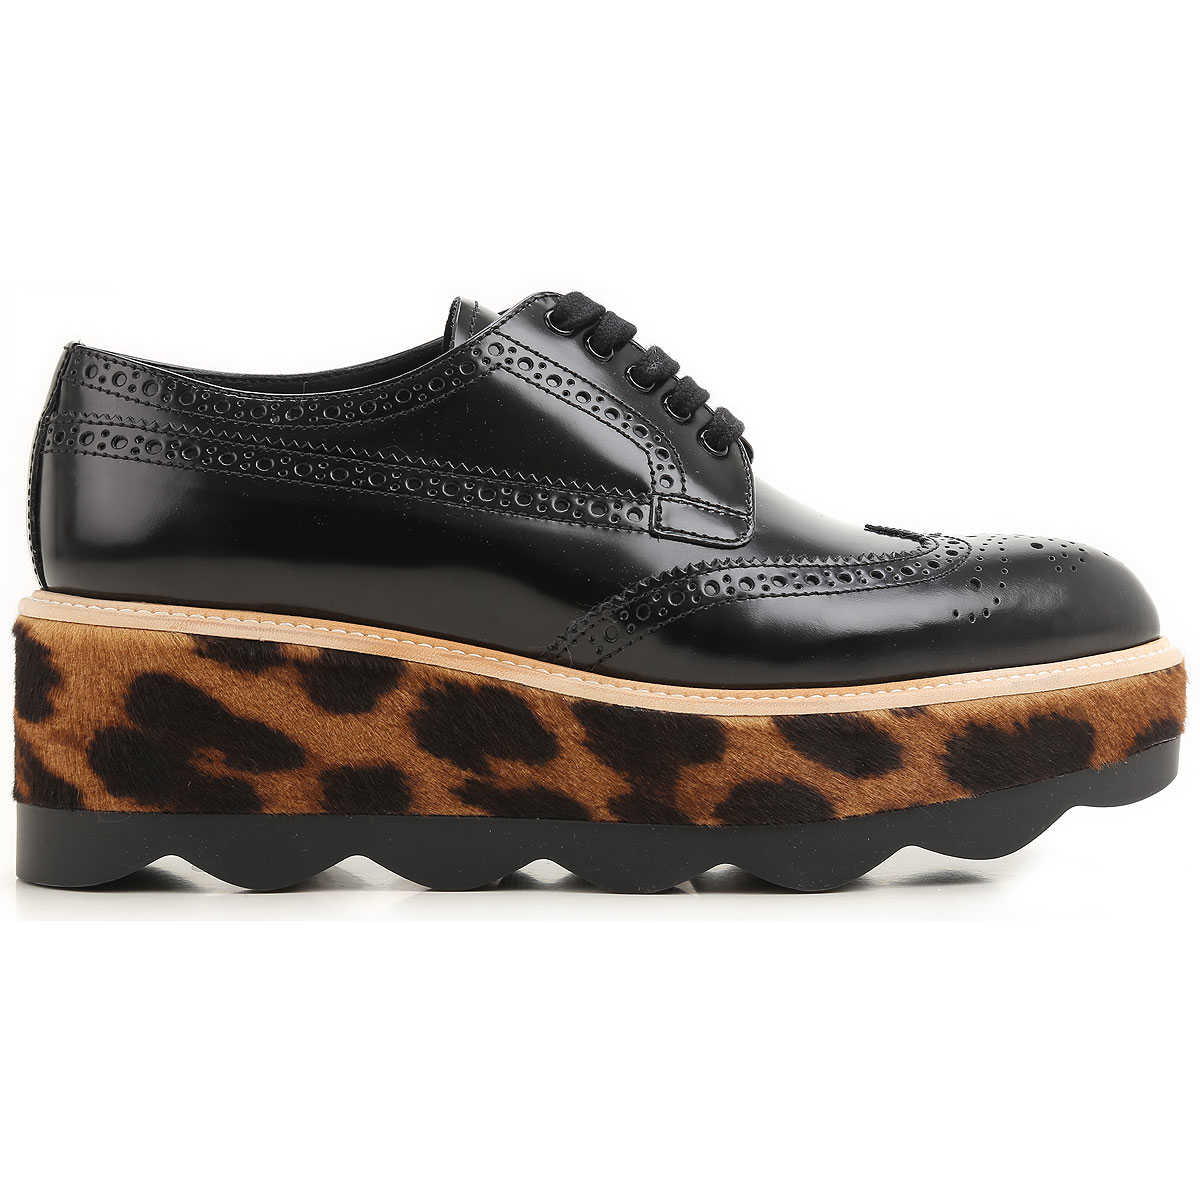 Prada Brogues Oxford Shoes On Sale in Outlet